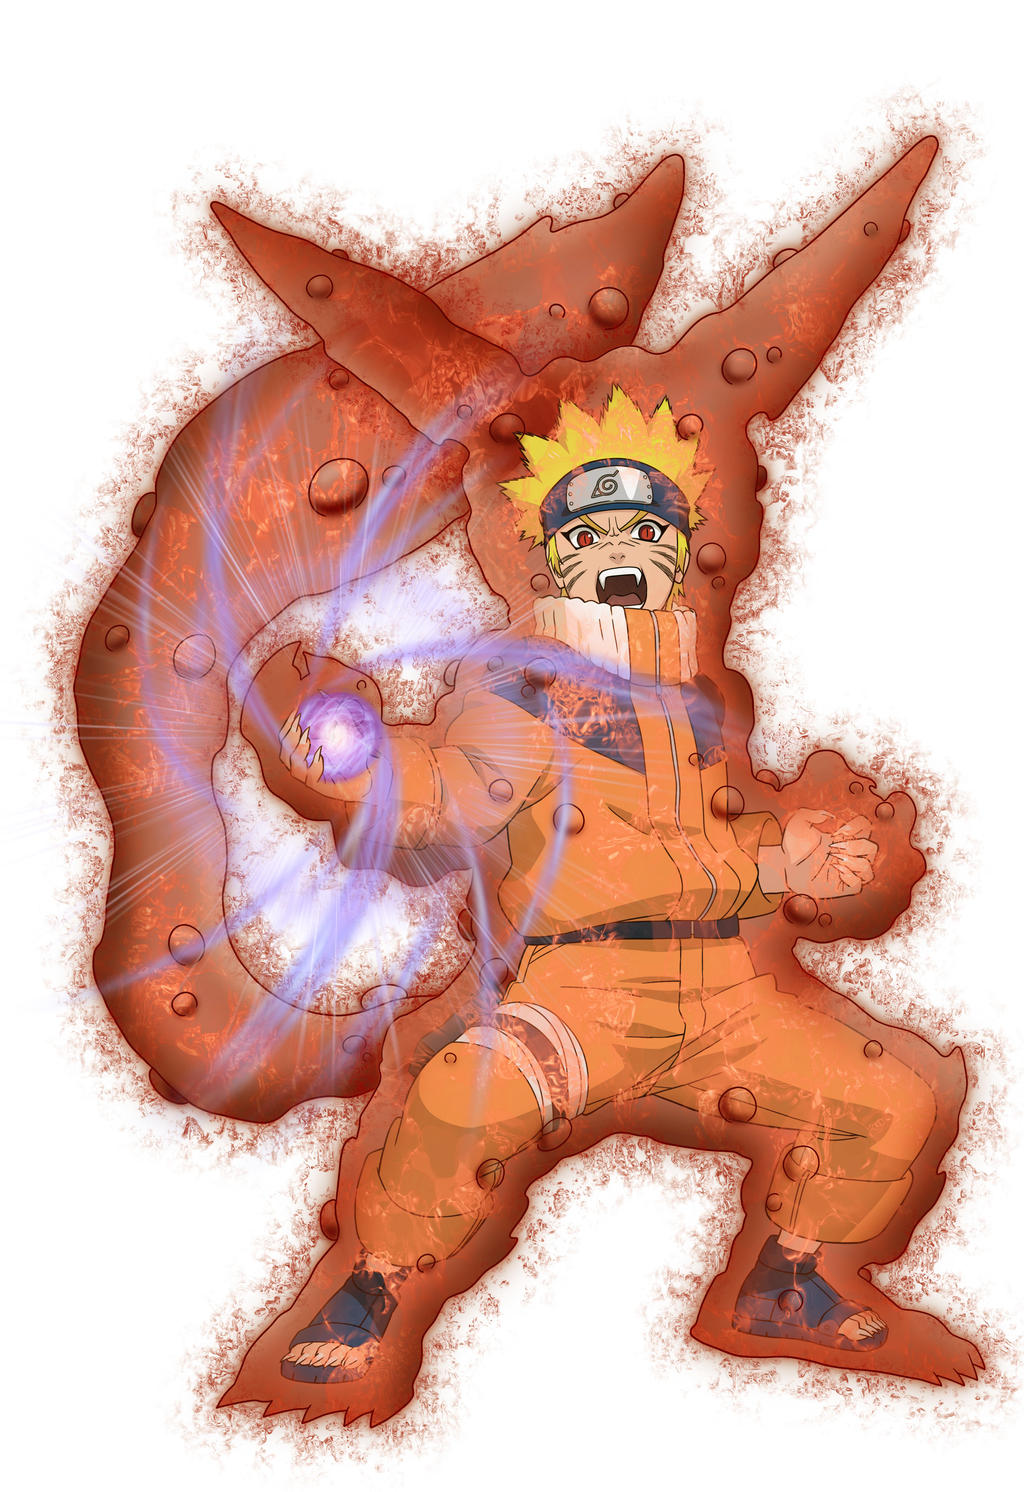 naruto kyuubi cloak mode - photo #35